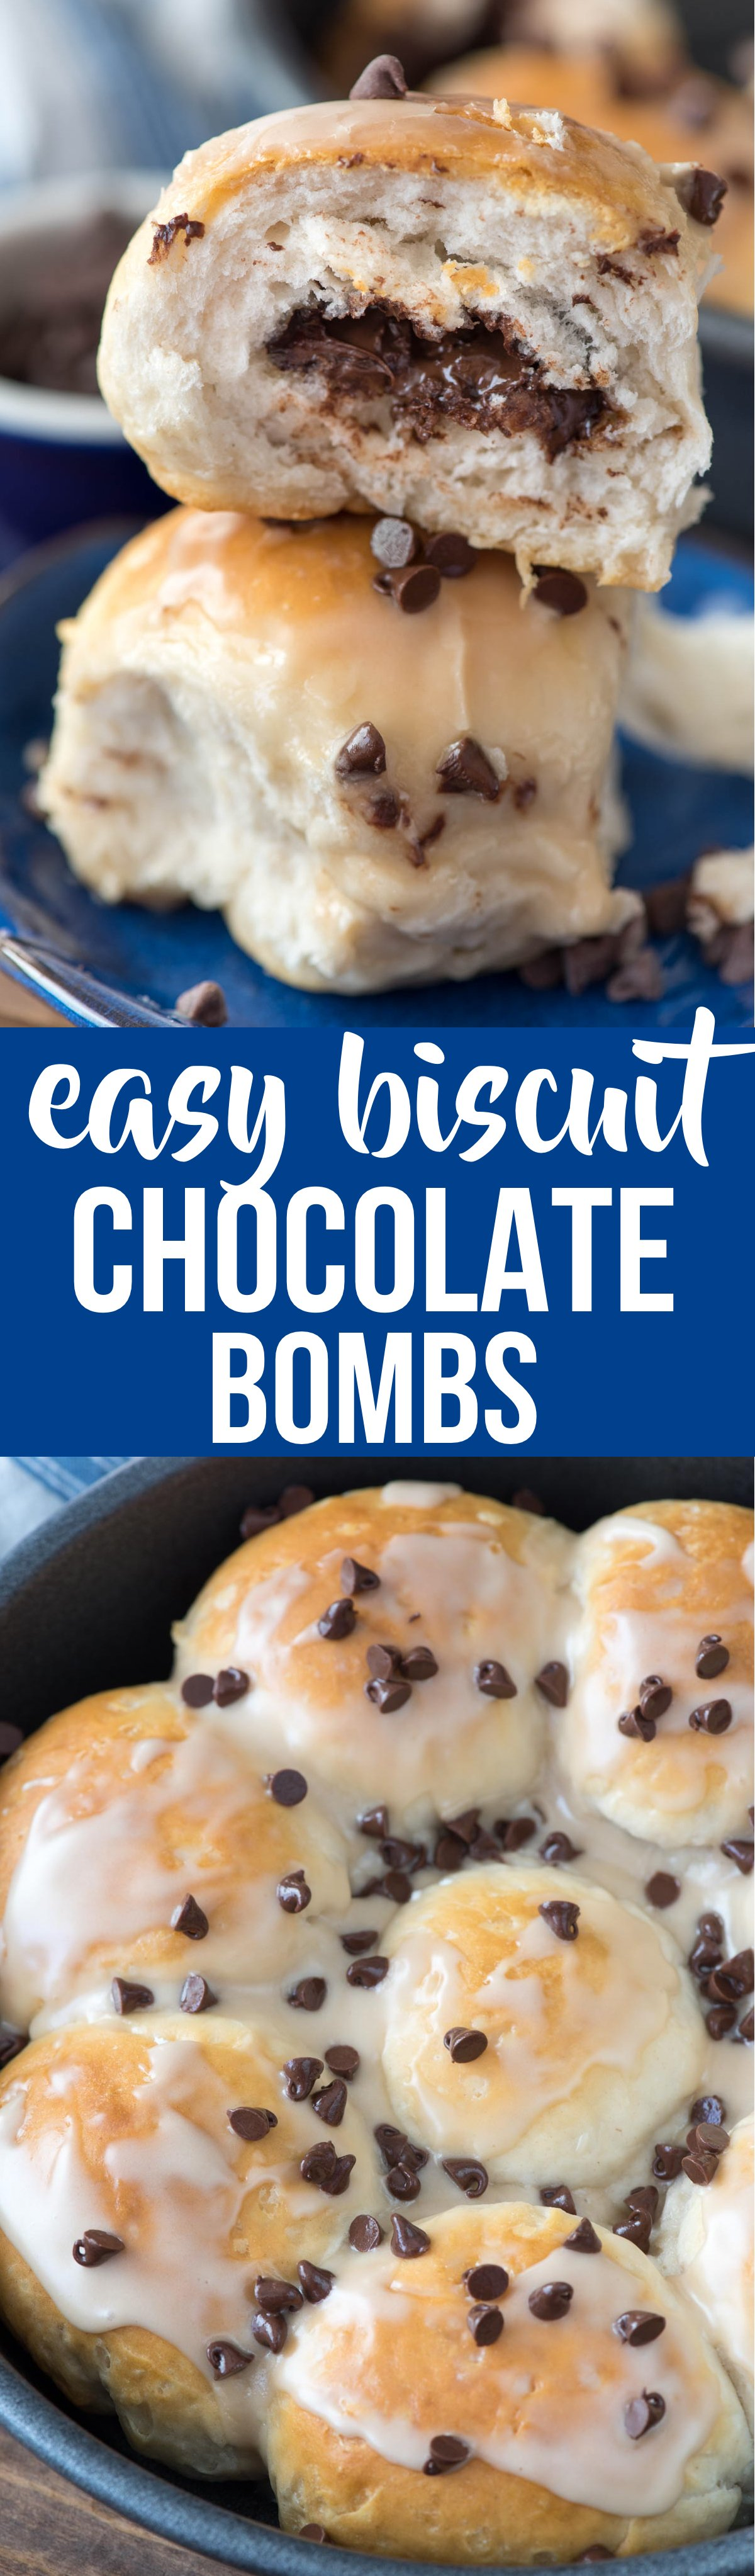 These  Chocolate Biscuit Bombs are like the best chocolate danish ever! Only 2 ingredients, they bake up fast; they're the perfect brunch or dessert recipe.